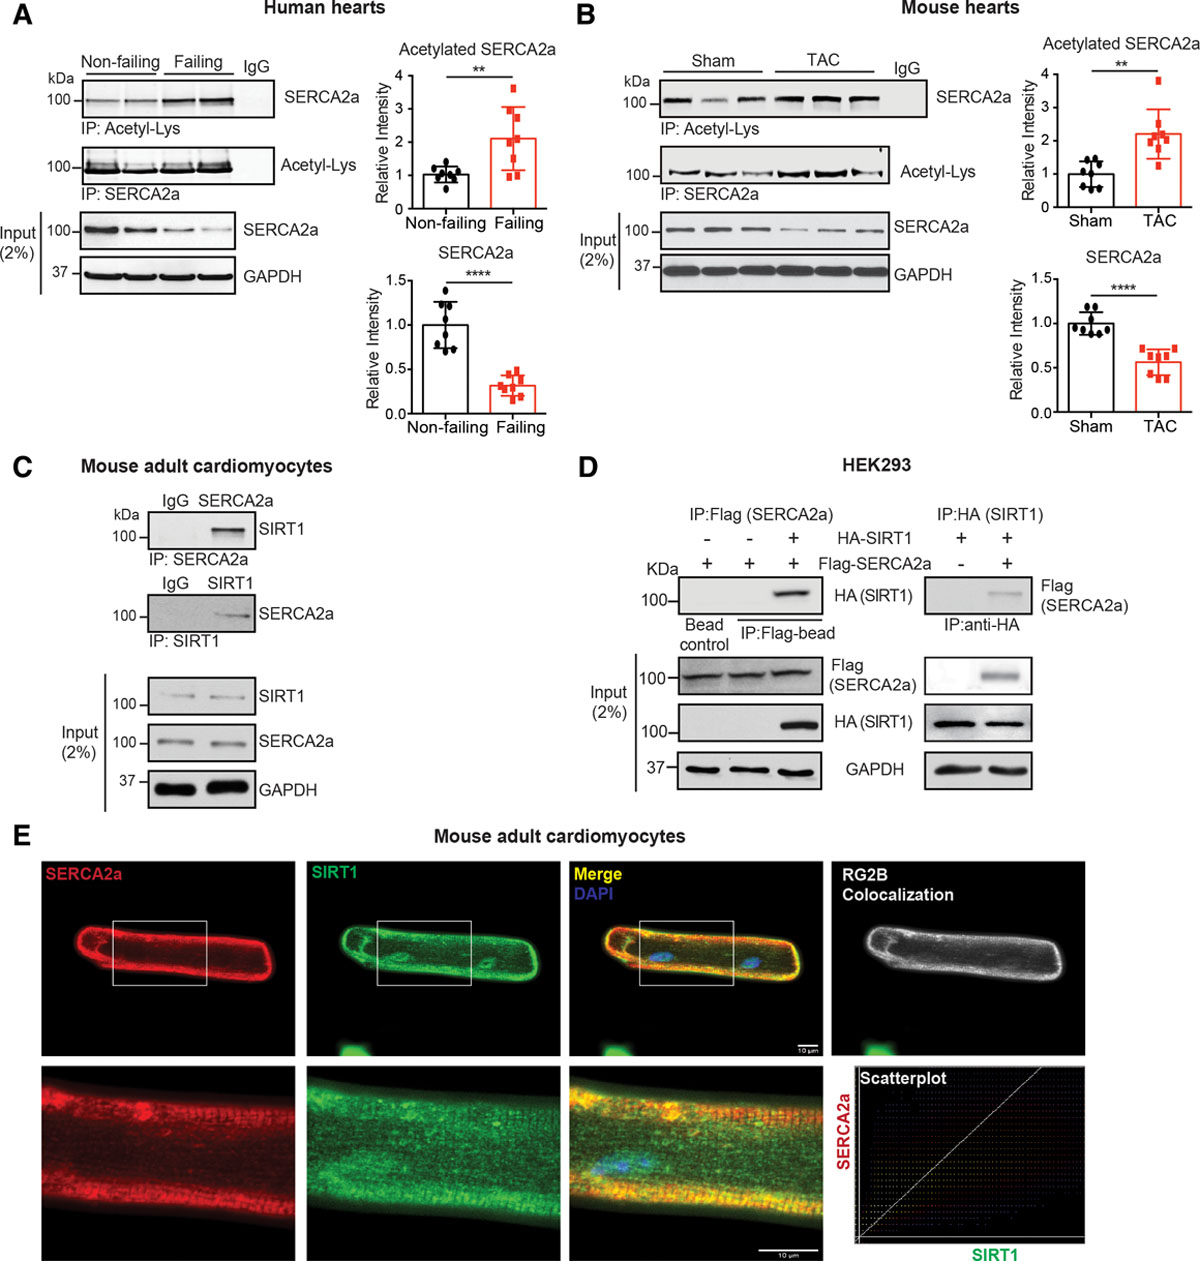 Role of SIRT1 in Modulating Acetylation of the Sarco